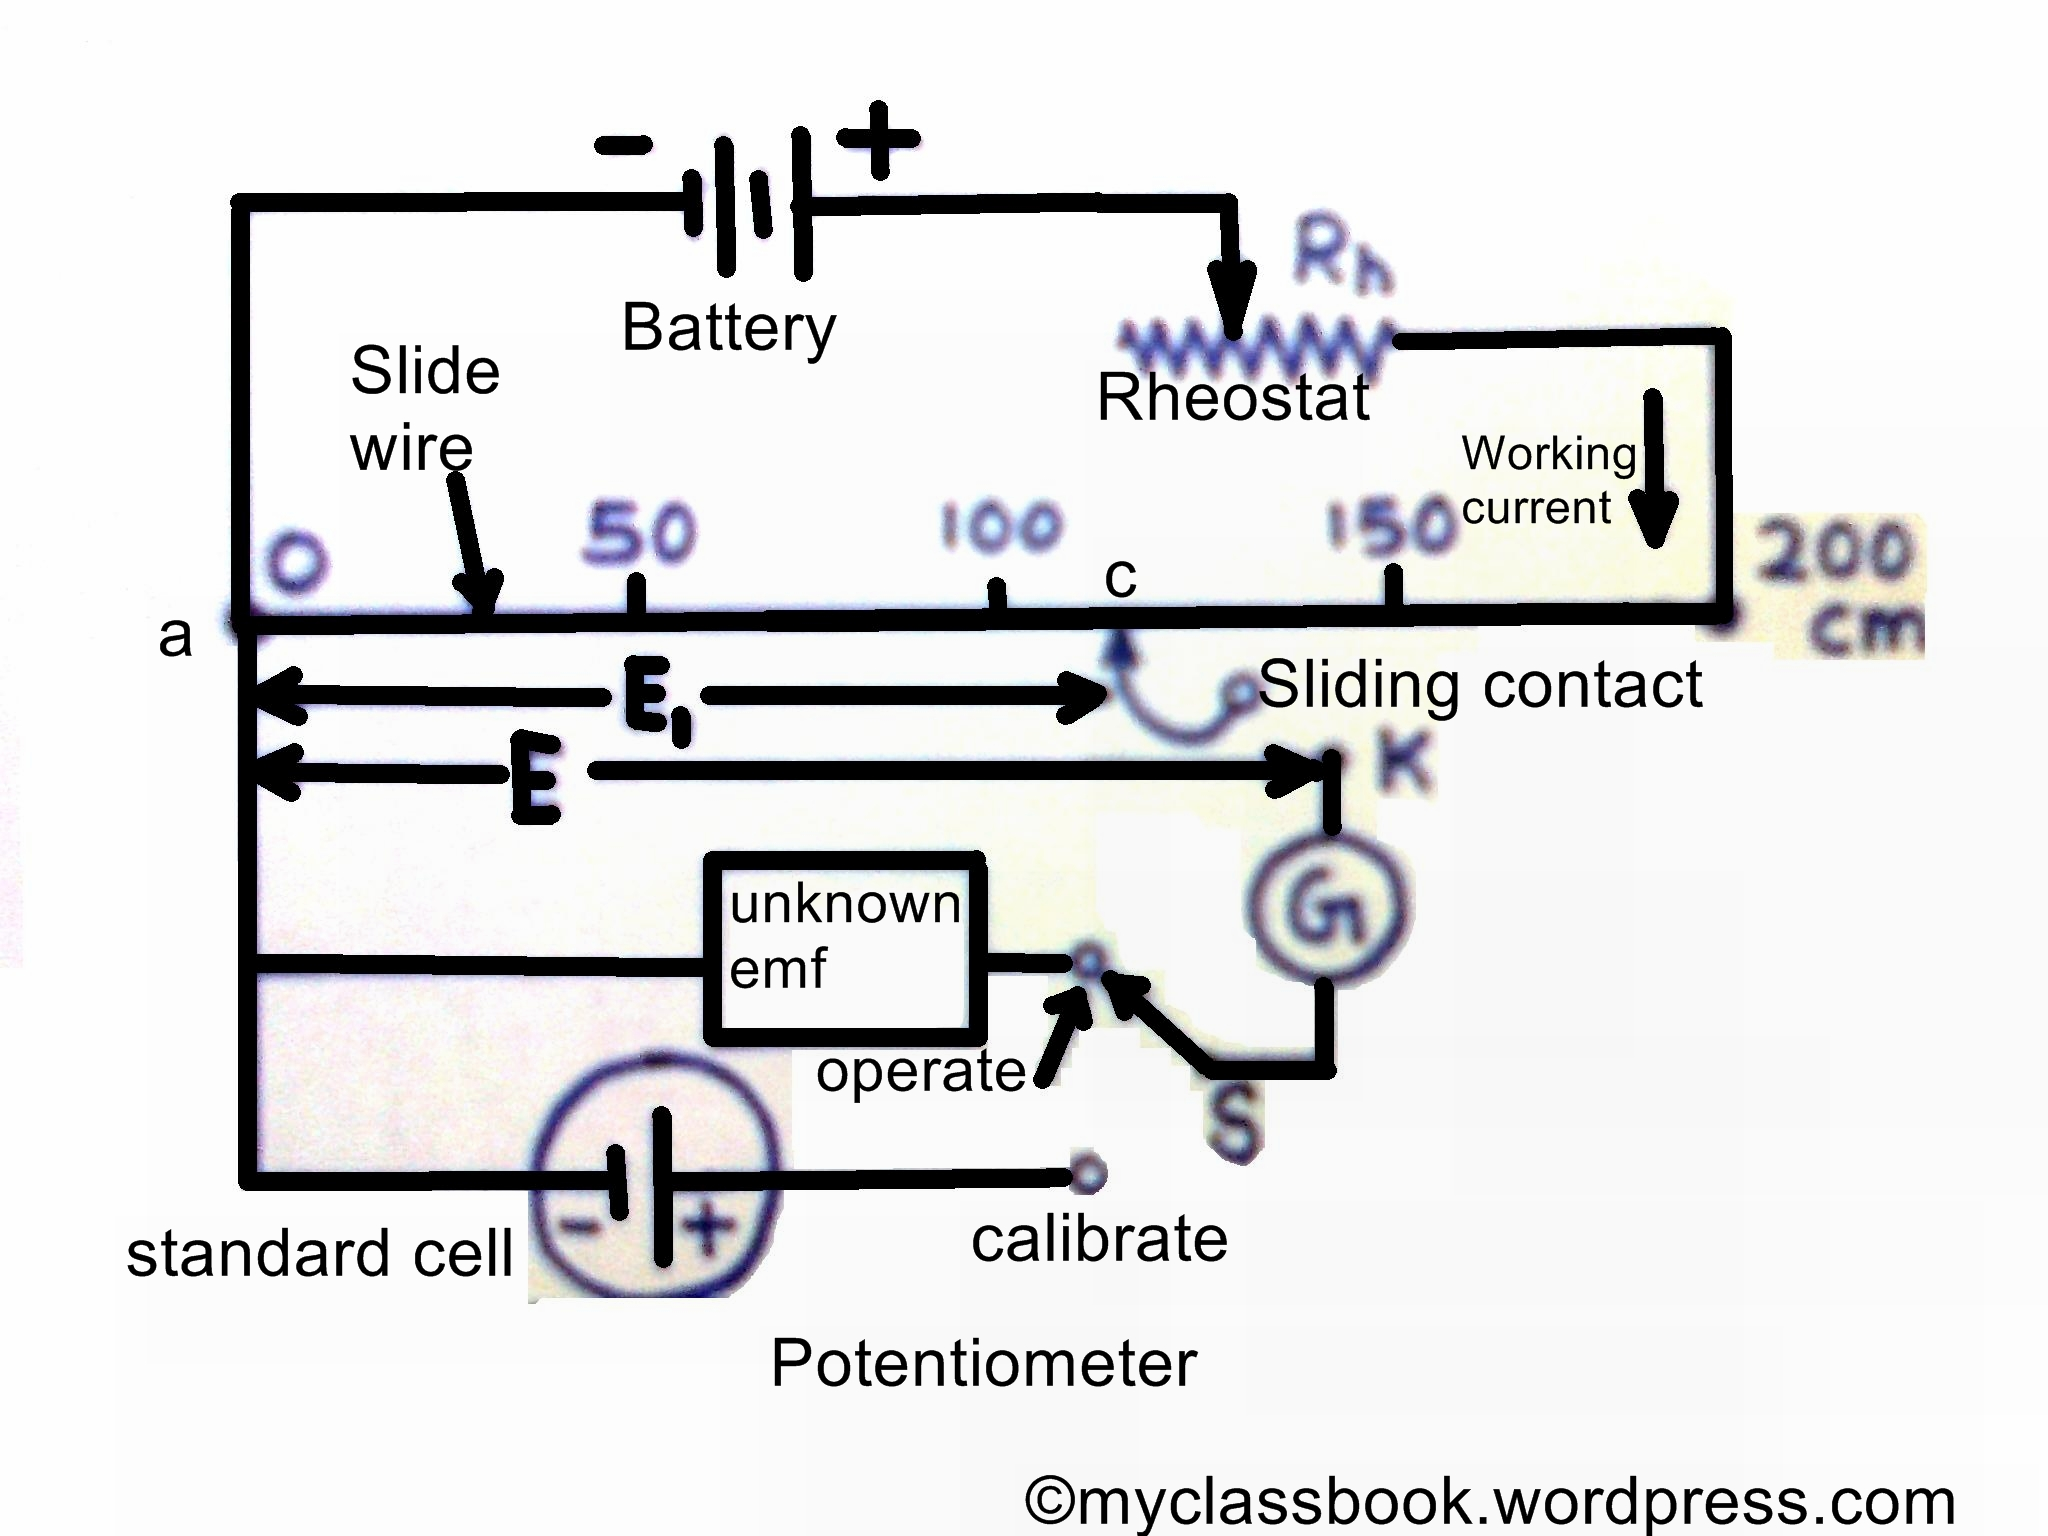 4 wire measurement circuit schneider electric contactor wiring diagram potentiometer method for low resistance